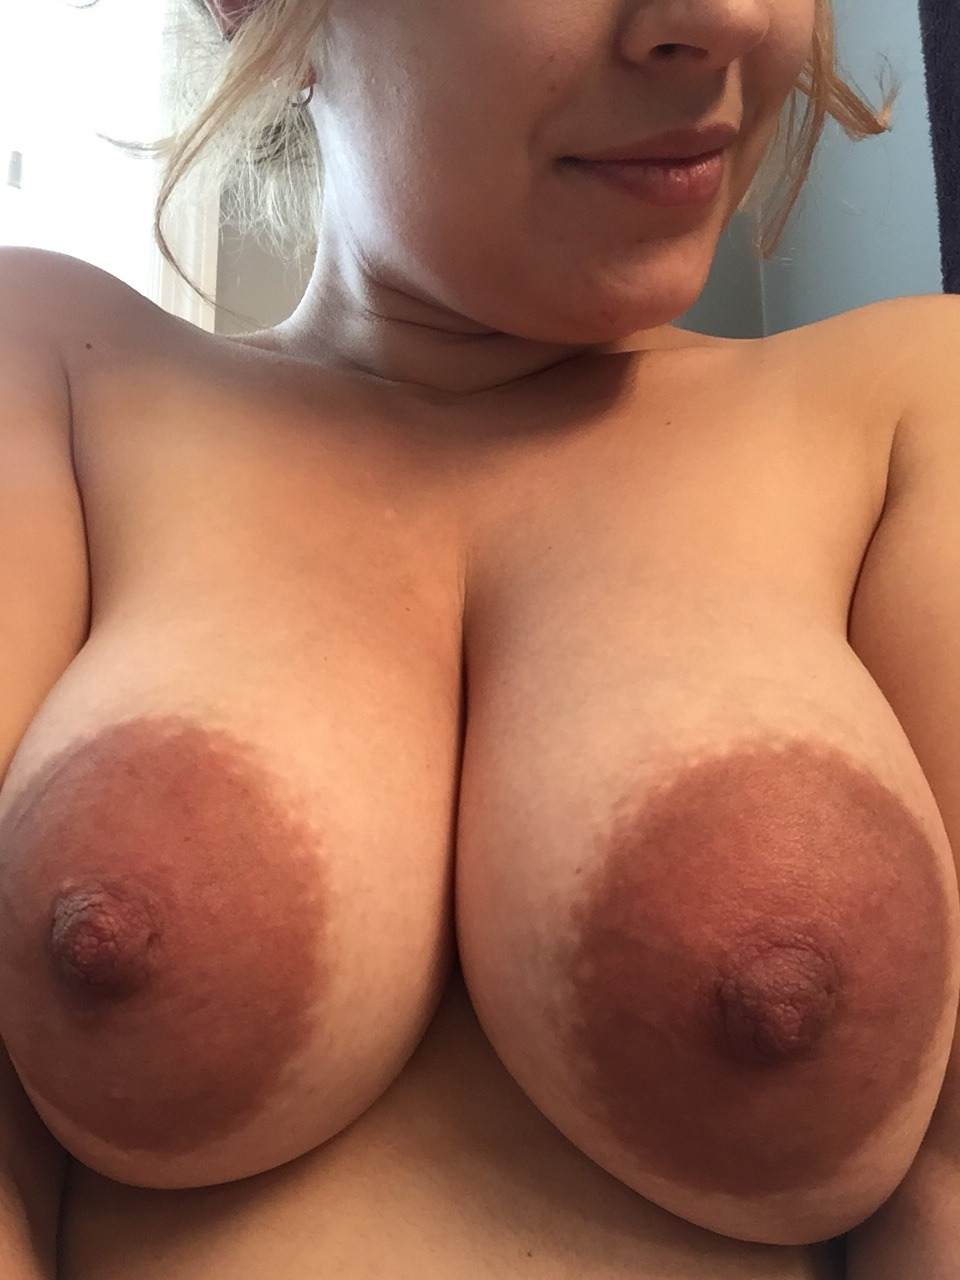 Pics Of Large Areolas